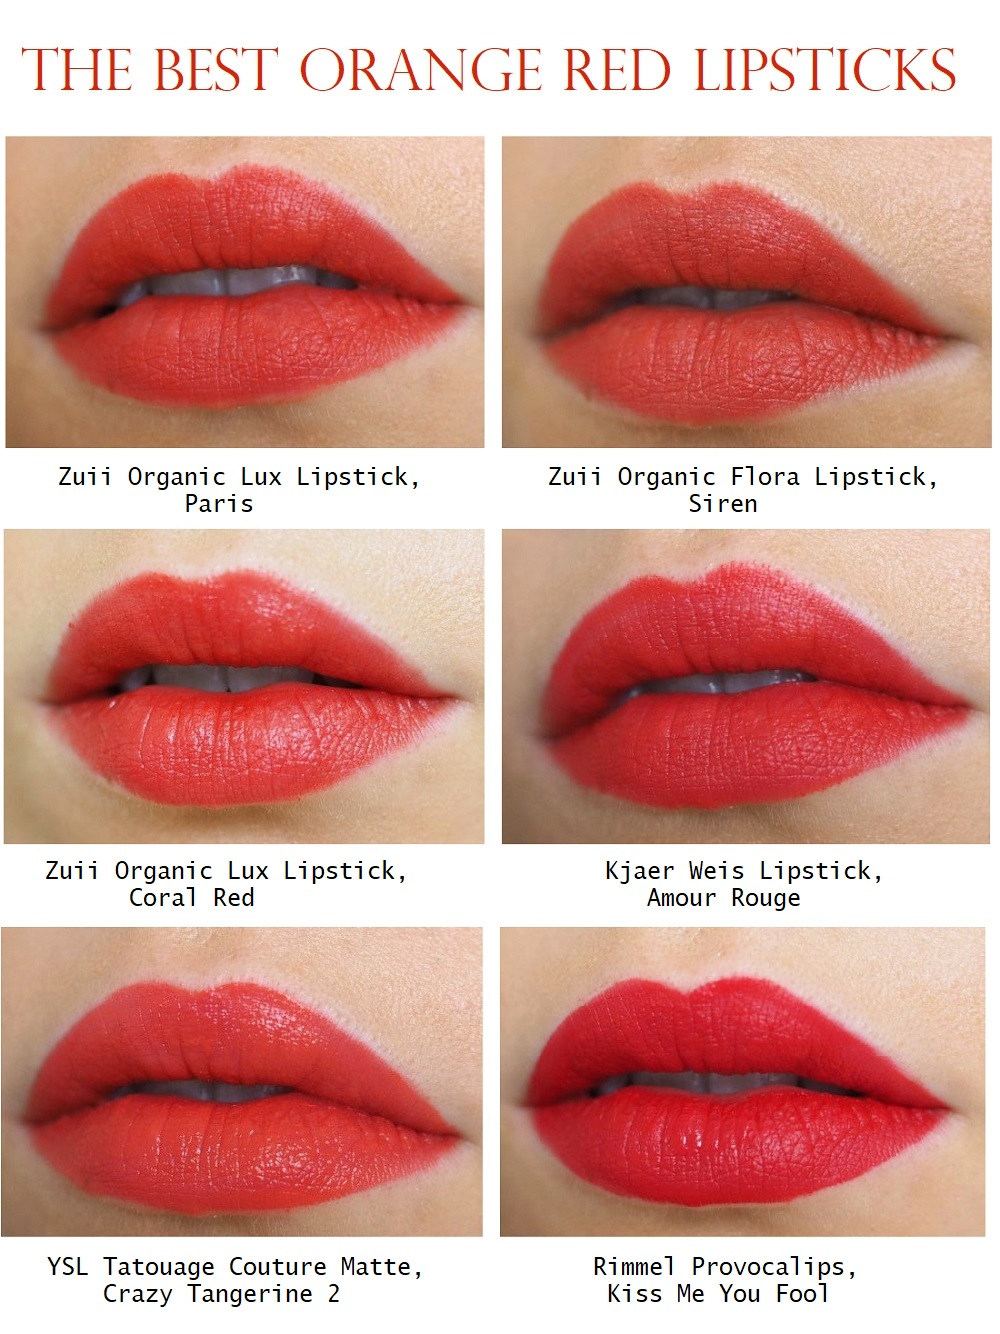 the best orange red lipsticks